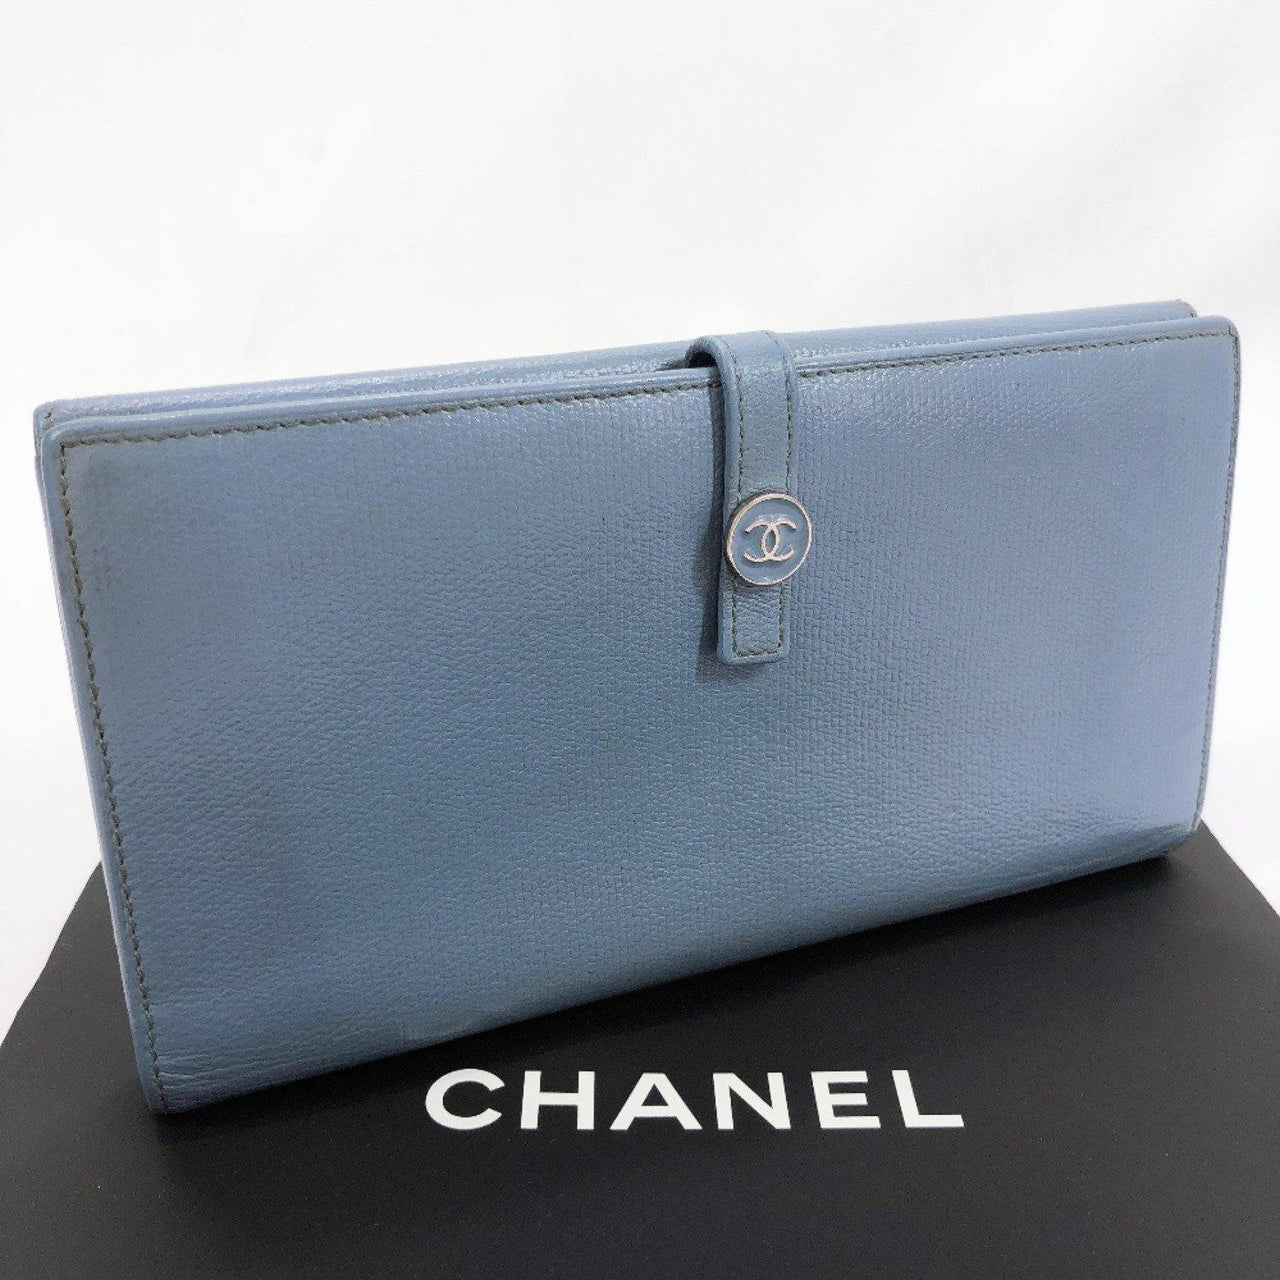 CHANEL purse leather blue Women Used - JP-BRANDS.com